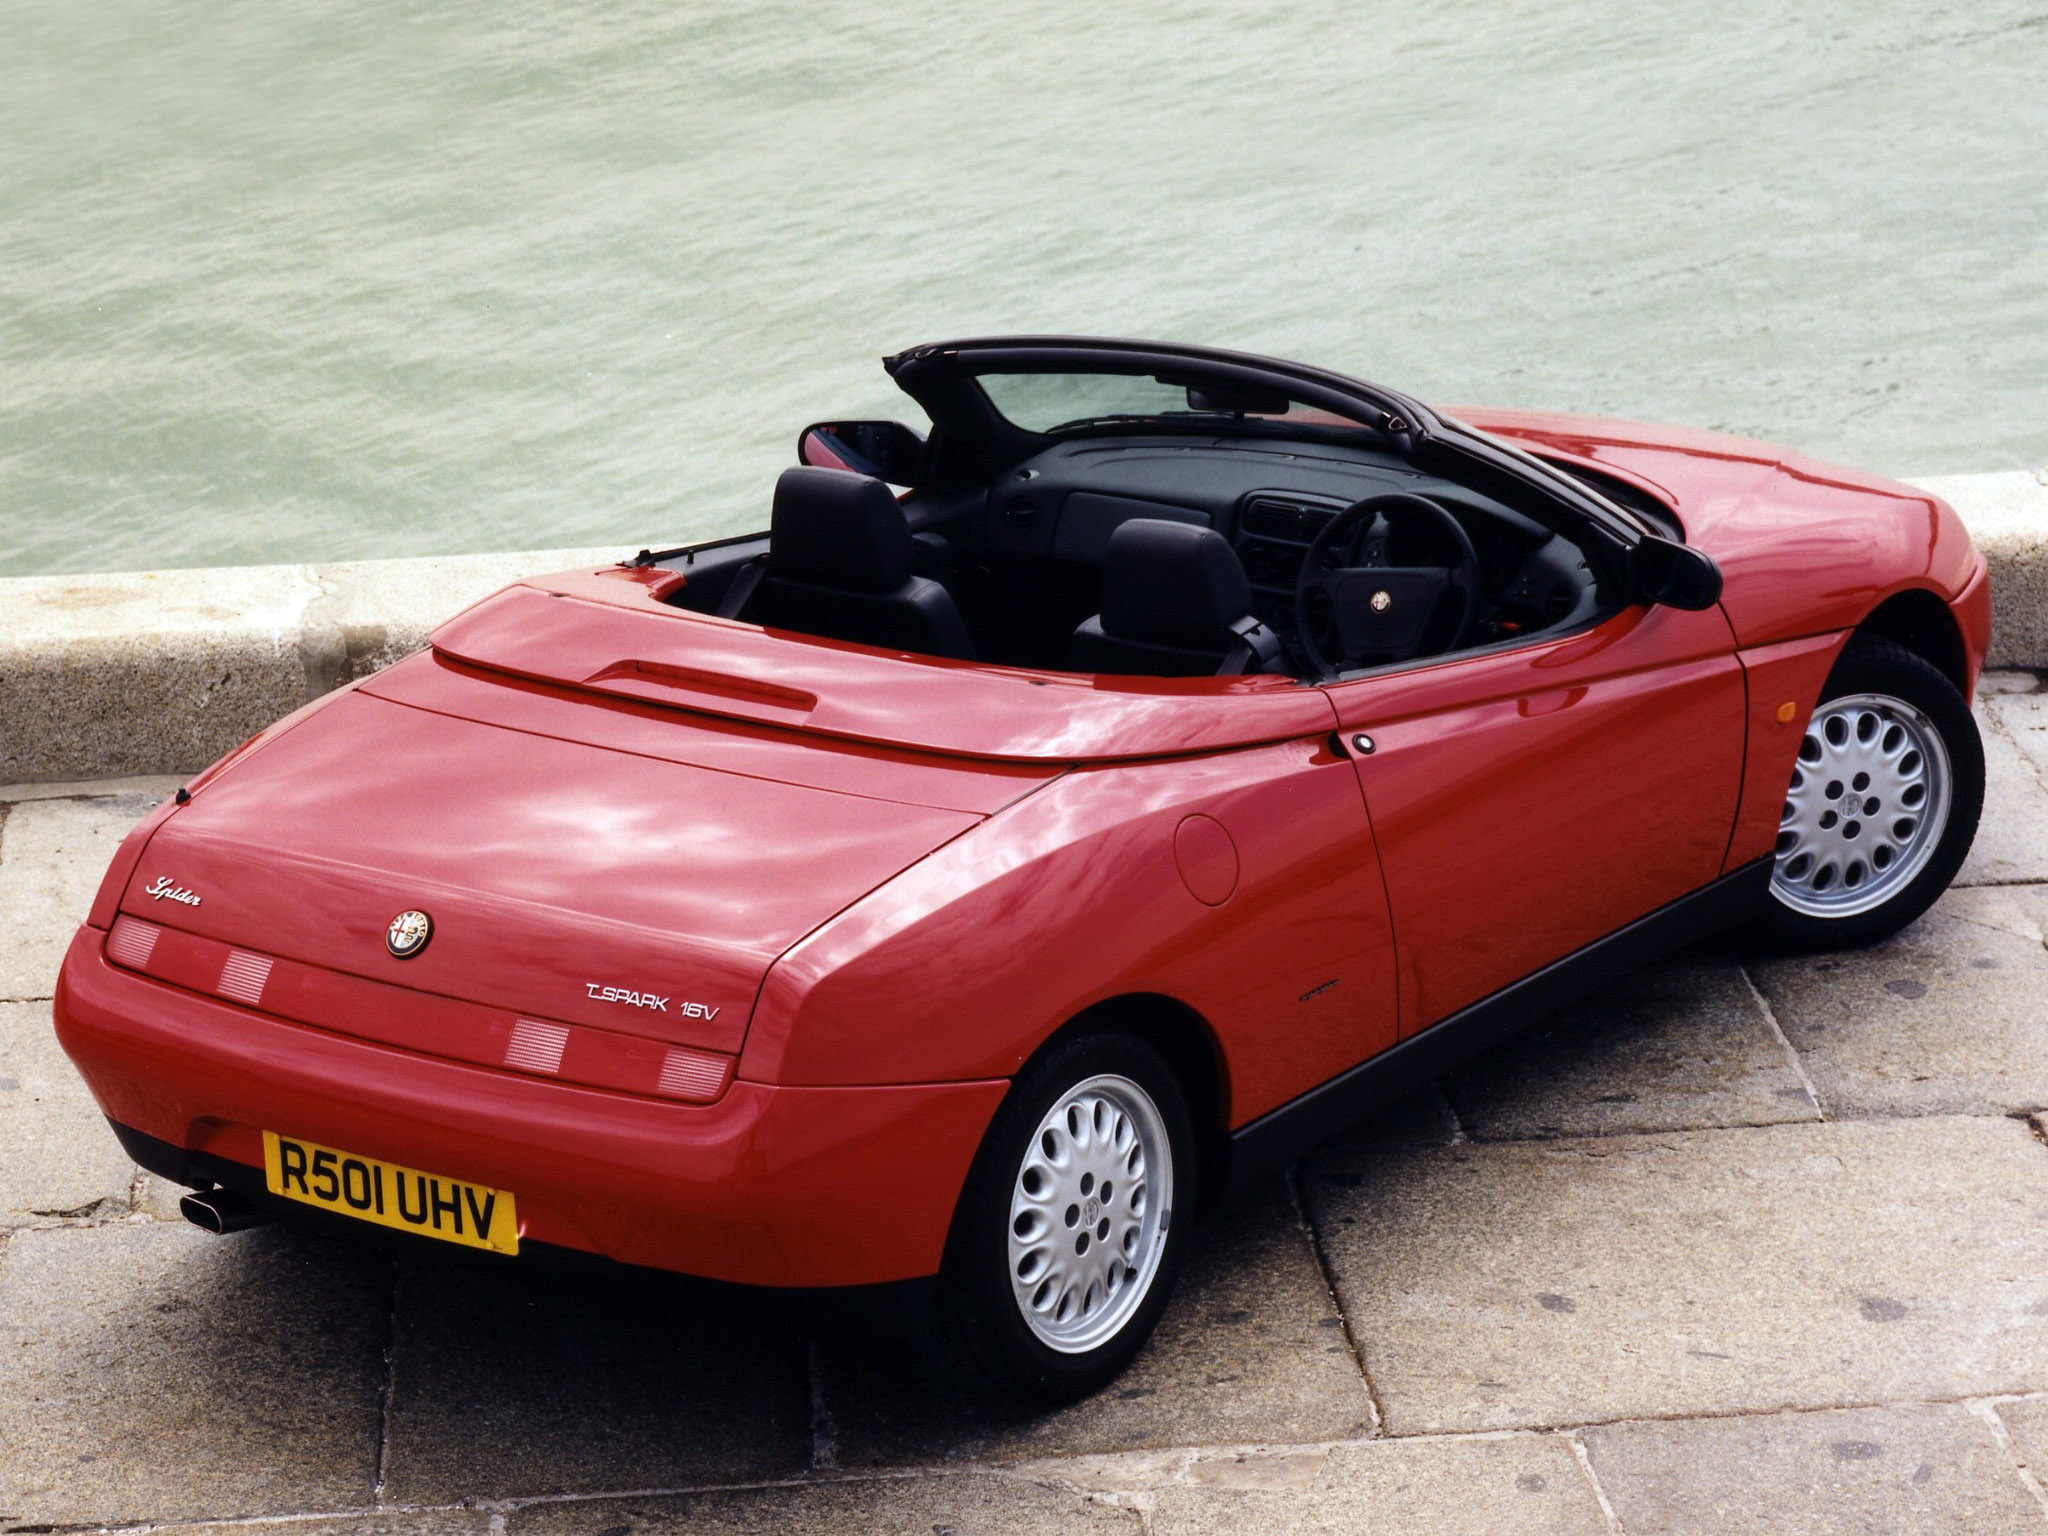 Alfa Romeo Spider UK Alfa Romeo Spider UK - 1994 alfa romeo spider